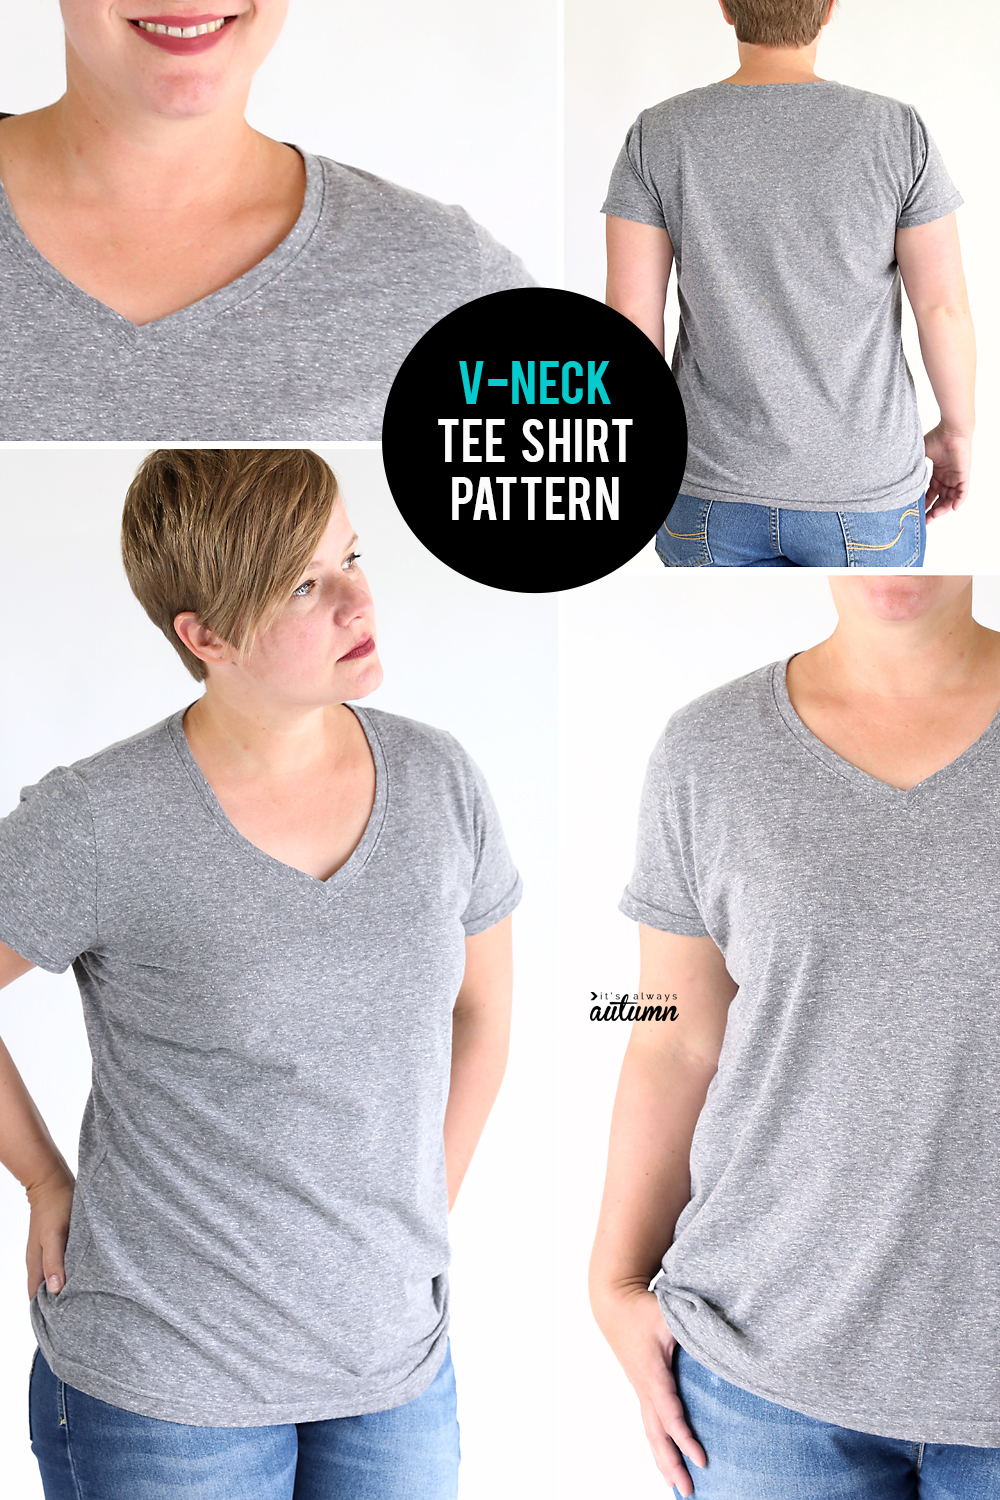 How to make a v-neck t-shirt! Free sewing pattern in women's size L.